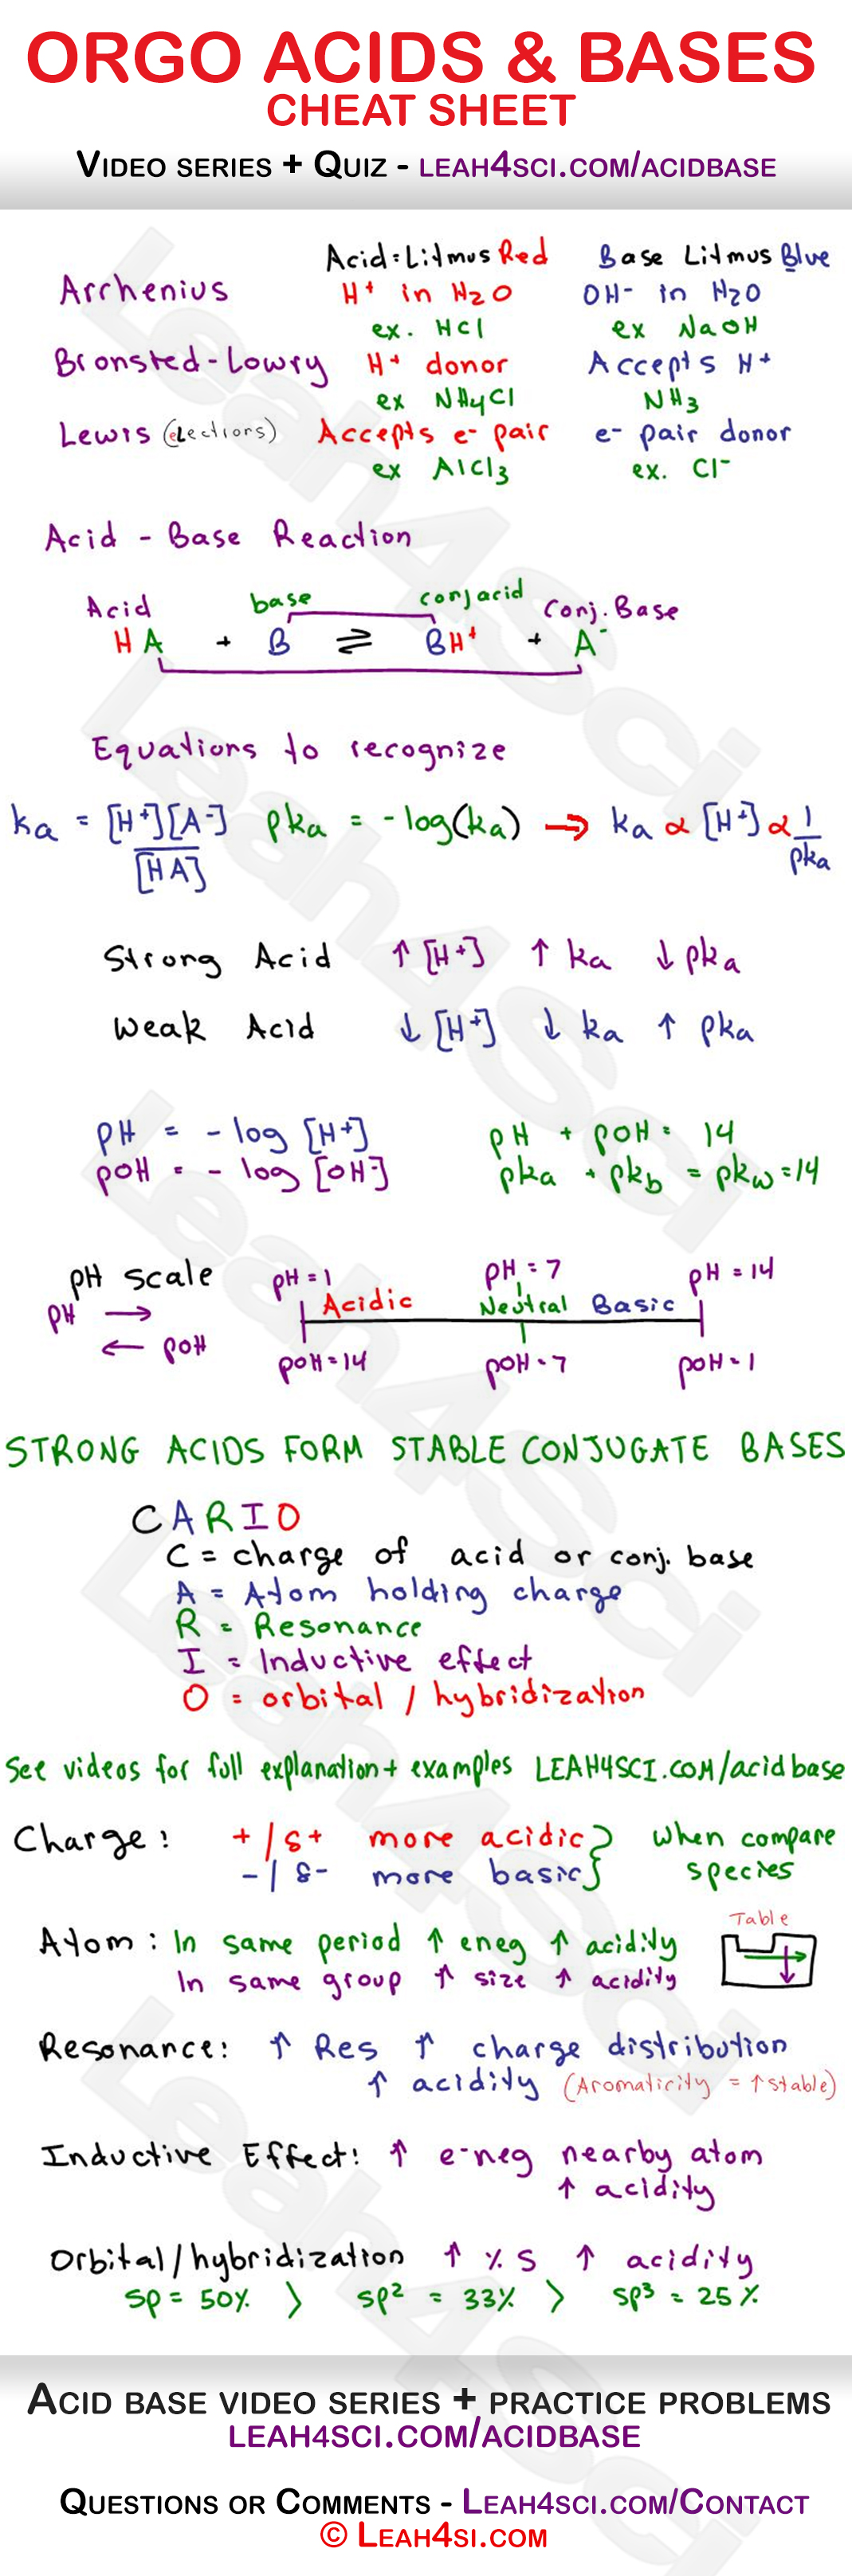 Acid Base pH and pKa Calculations in MCAT Chemistry Tutorial Video – Acid and Bases Worksheet Answer Key